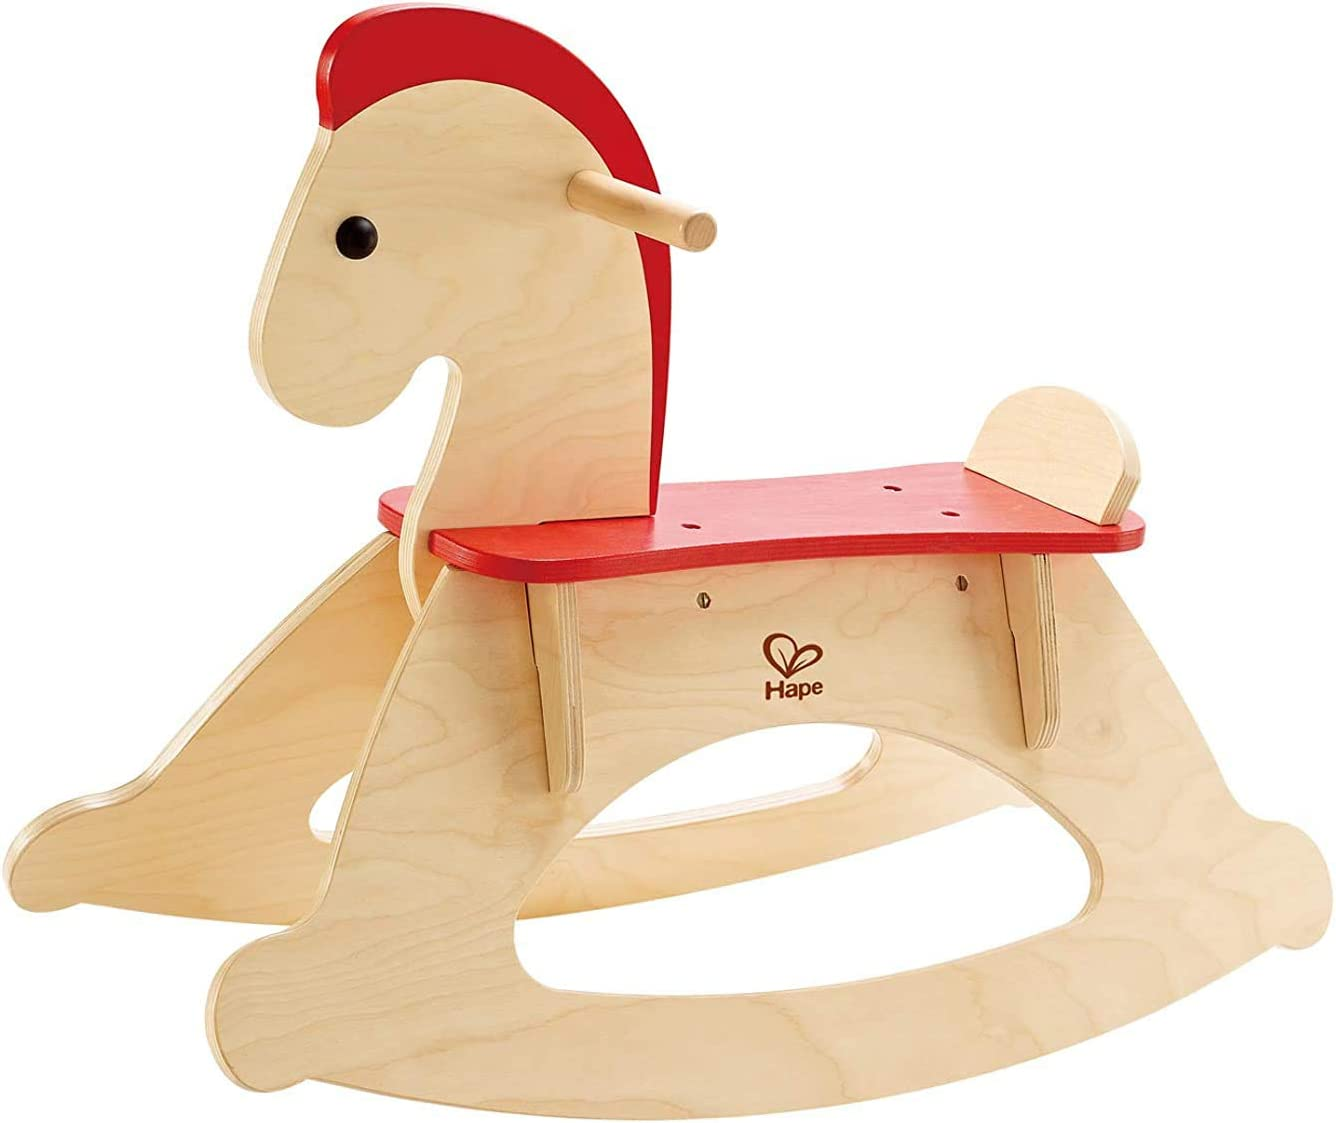 Top 10 Best Rocking Horse Toy (2020 Reviews & Guide) 4